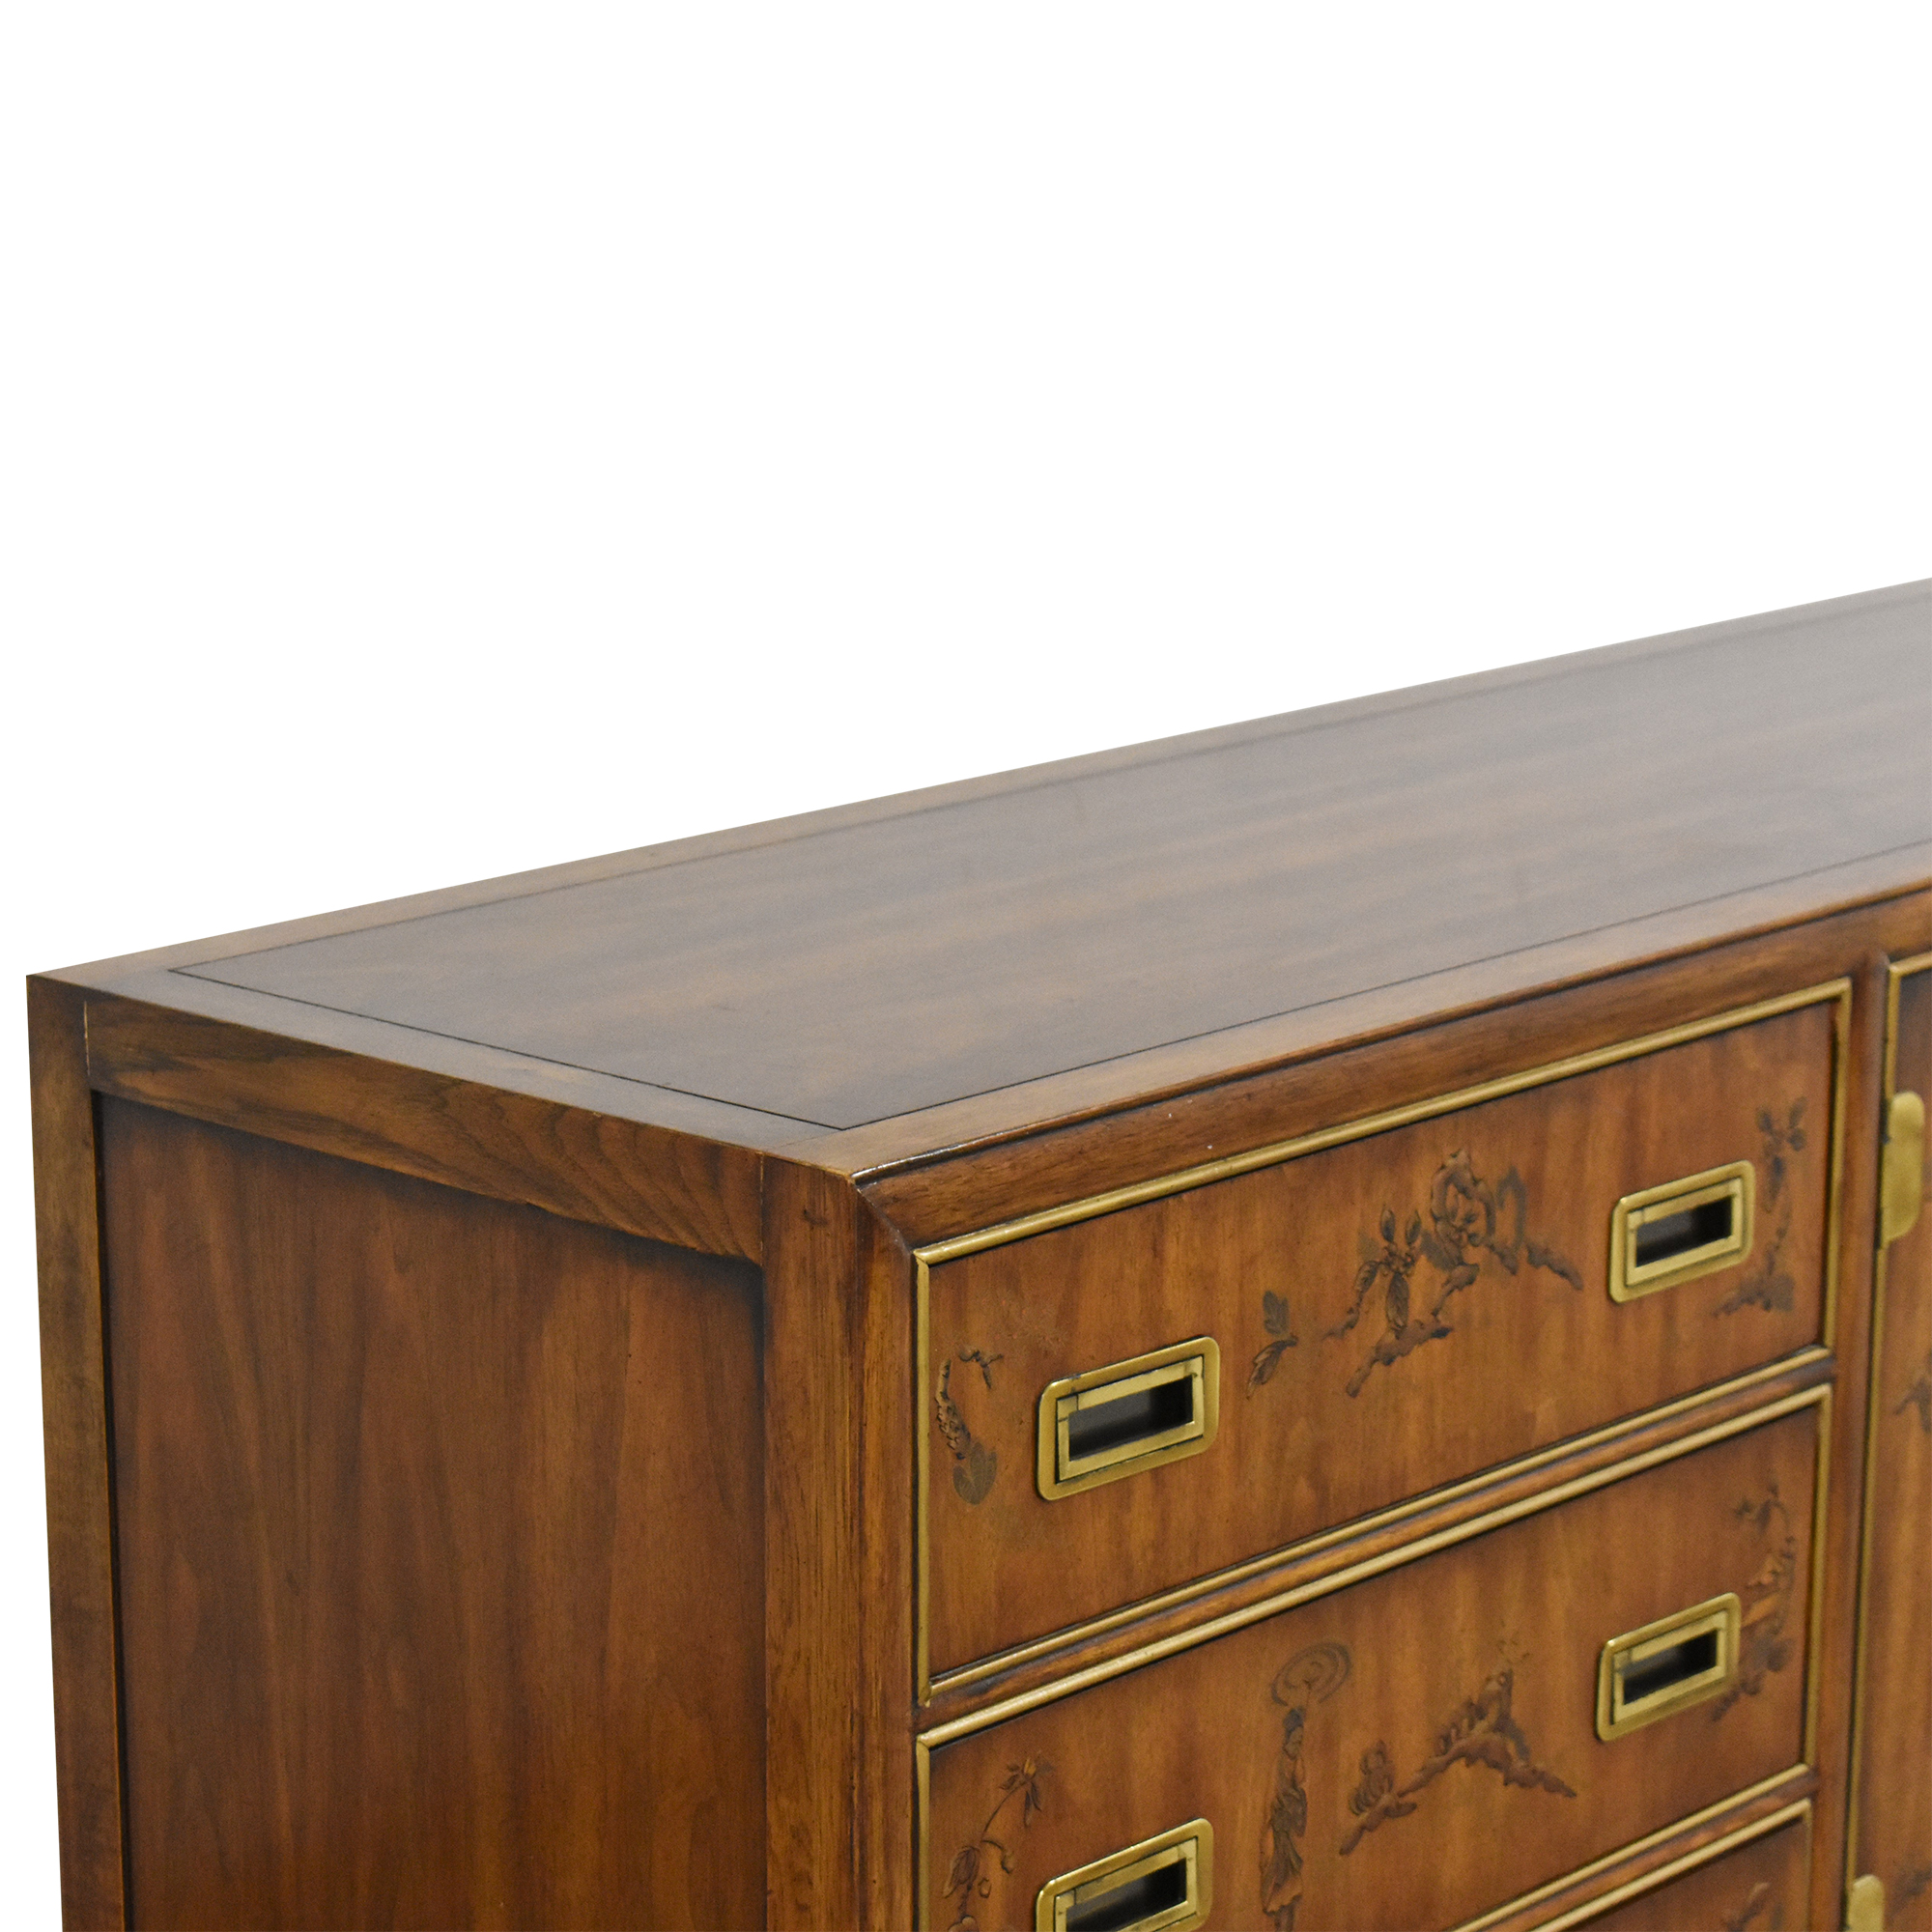 Drexel Heritage Drexel Heritage Dynasty Collection Campaign Dresser ma